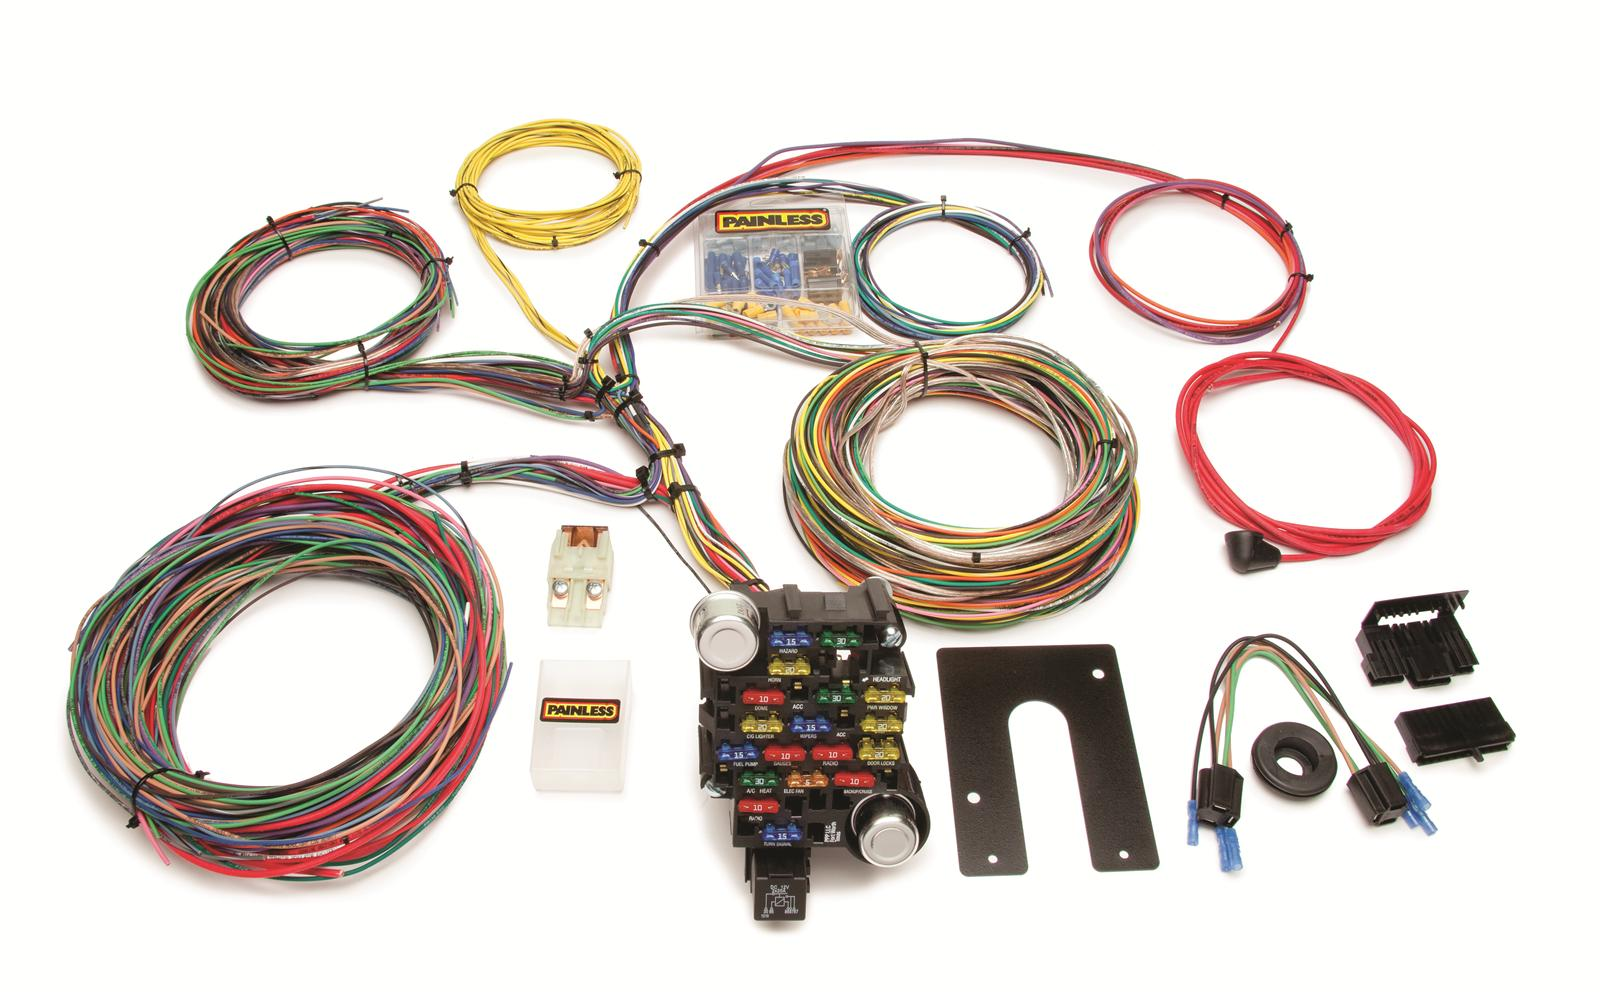 painless performance 28-circuit universal harnesses 10202 - free shipping  on orders over $99 at summit racing